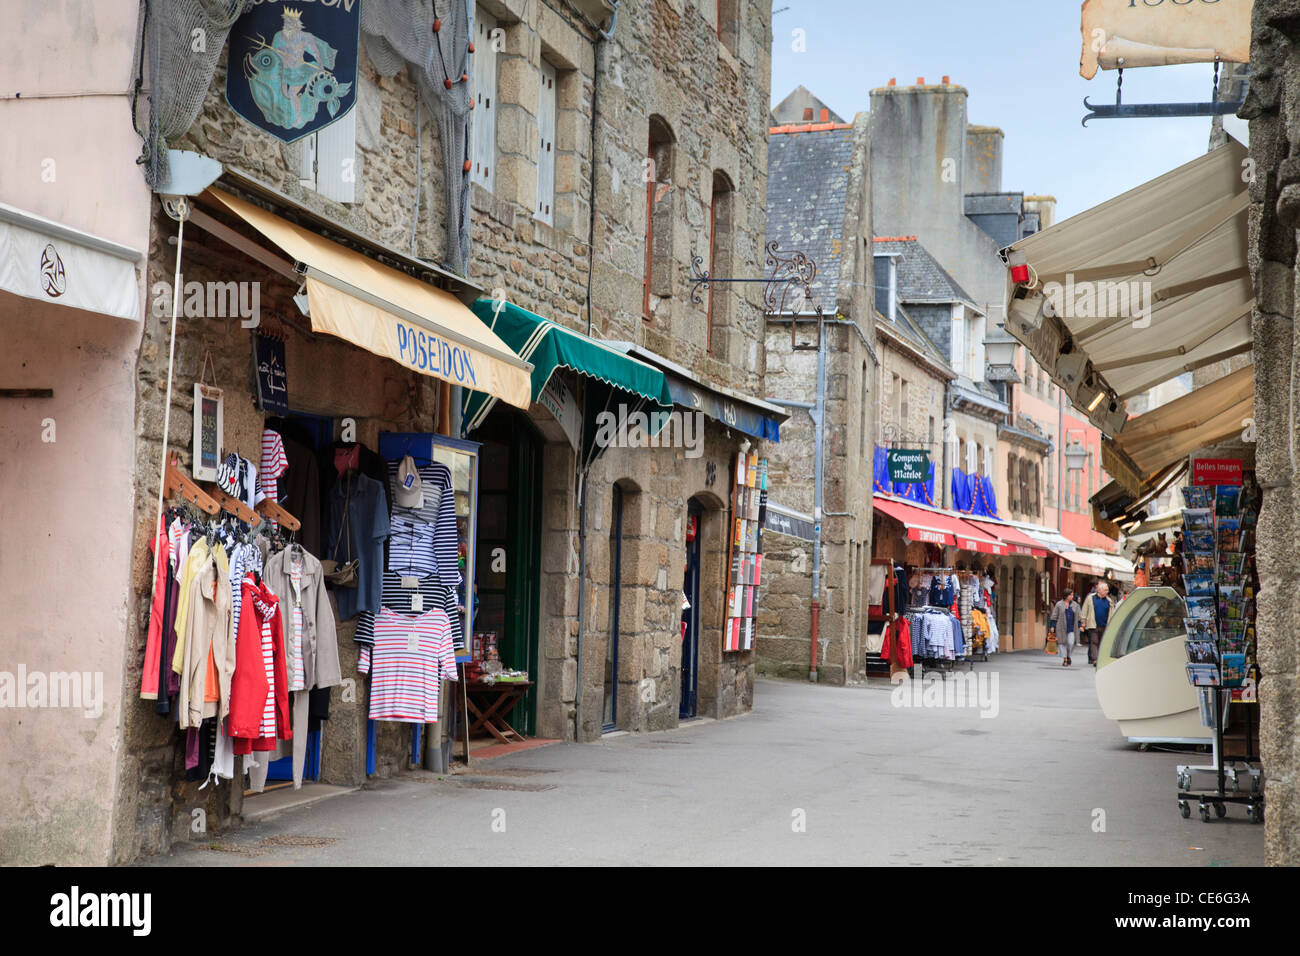 Souvenir shops selling striped Breton clothing in the Ville Close at Concarneau, Brittany, France. - Stock Image